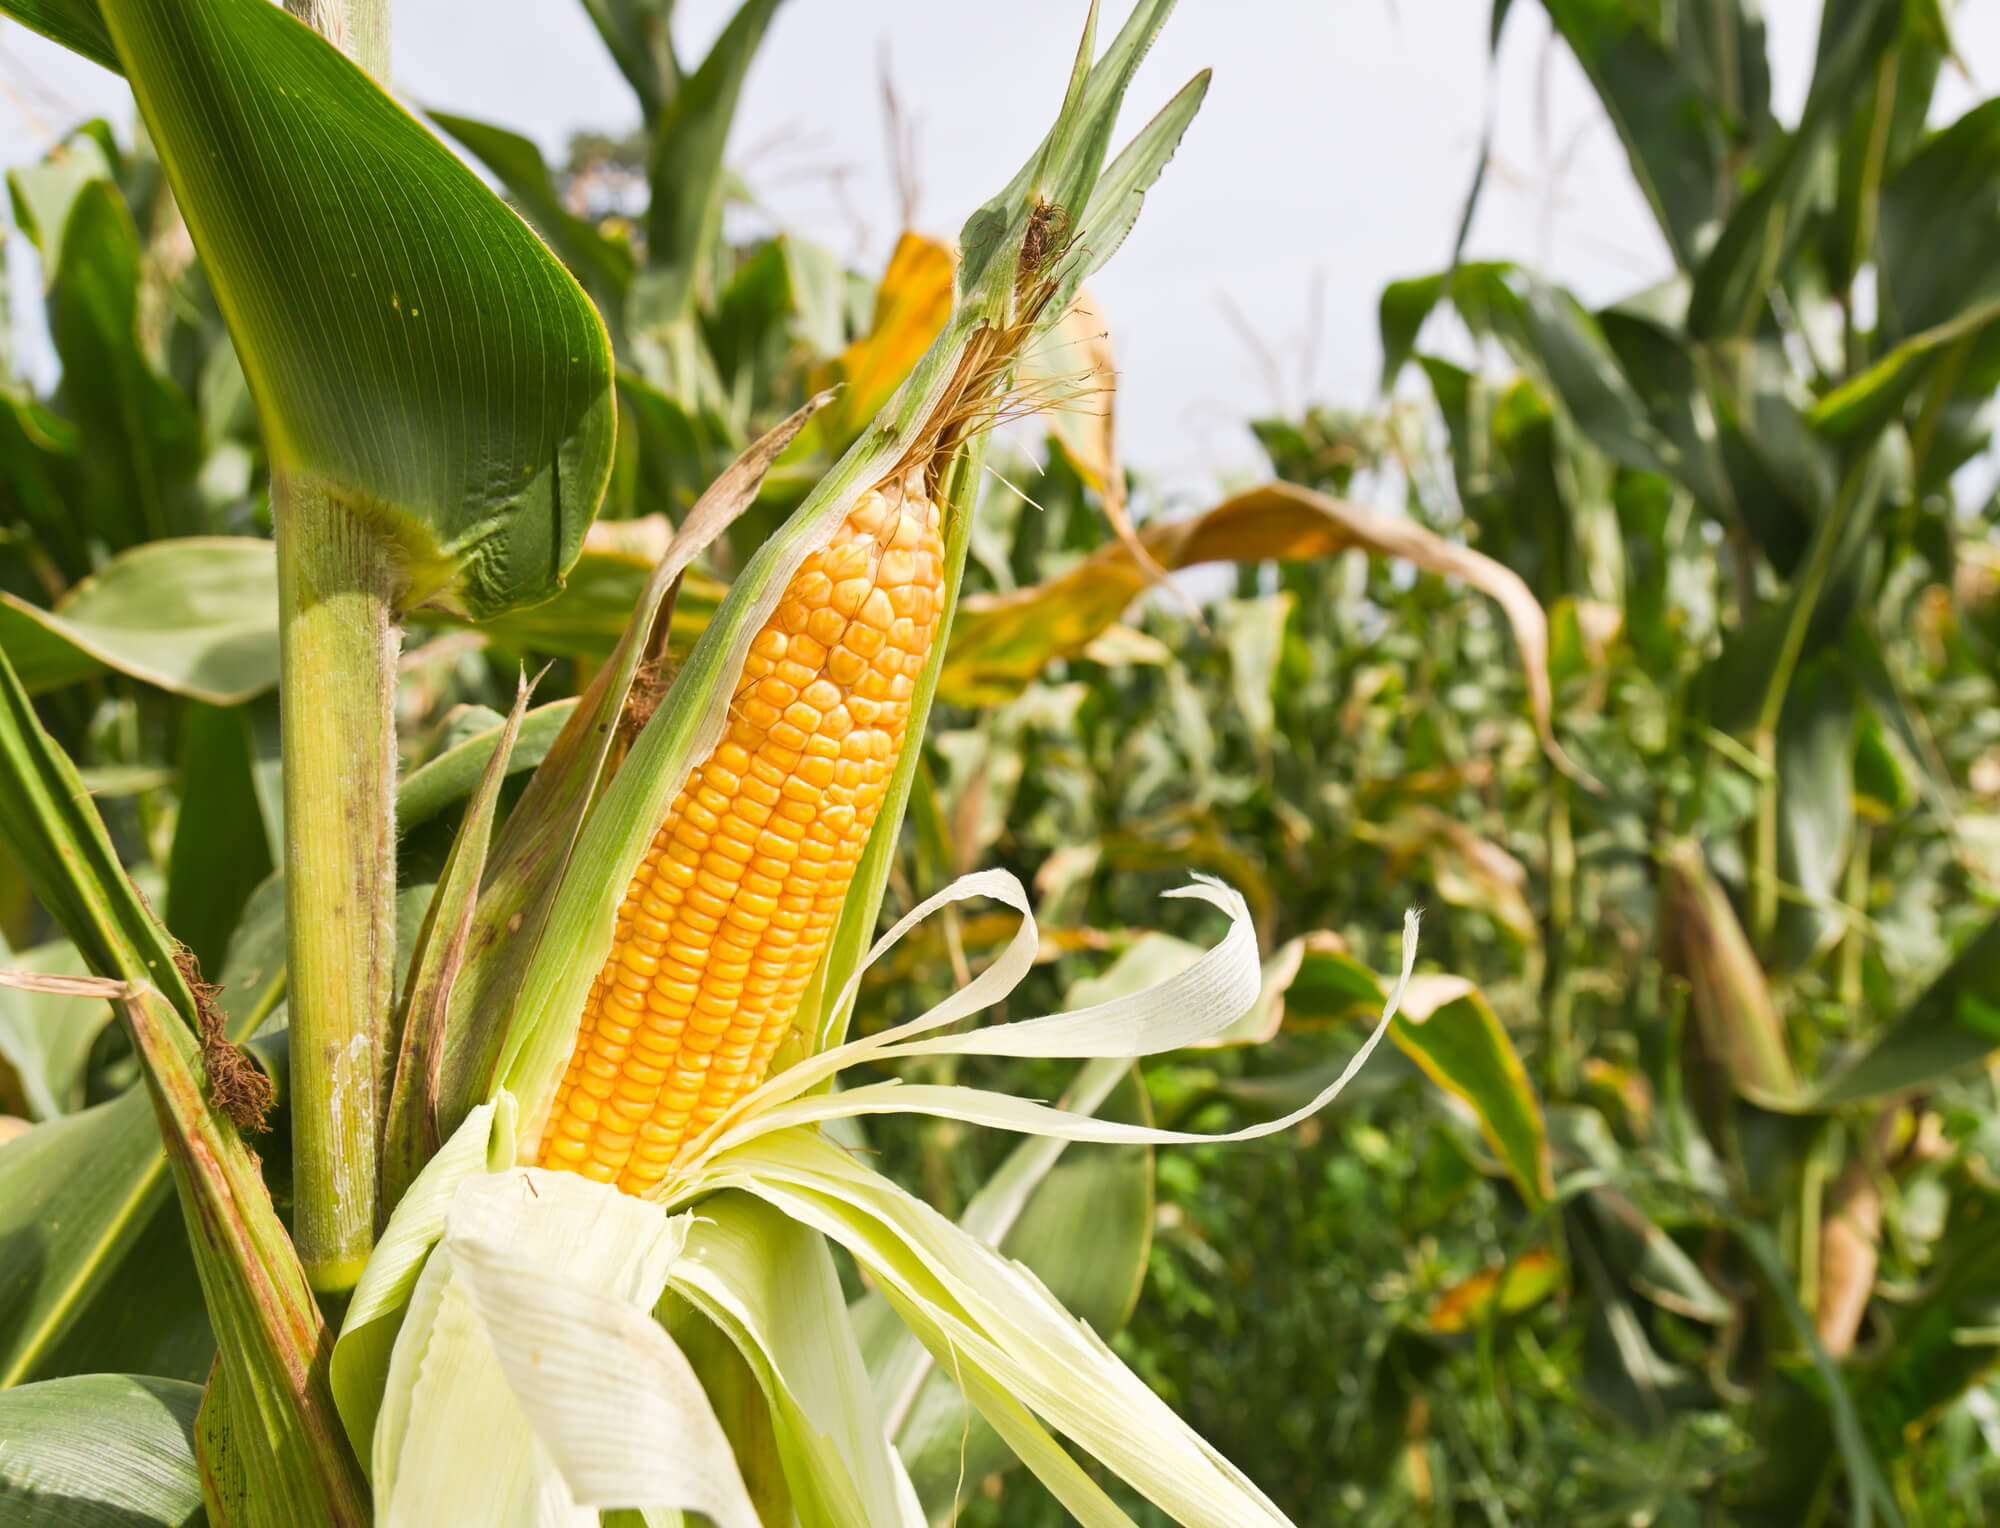 Ukraine corn producers mull 2018 intentions in light of new crop demand projections